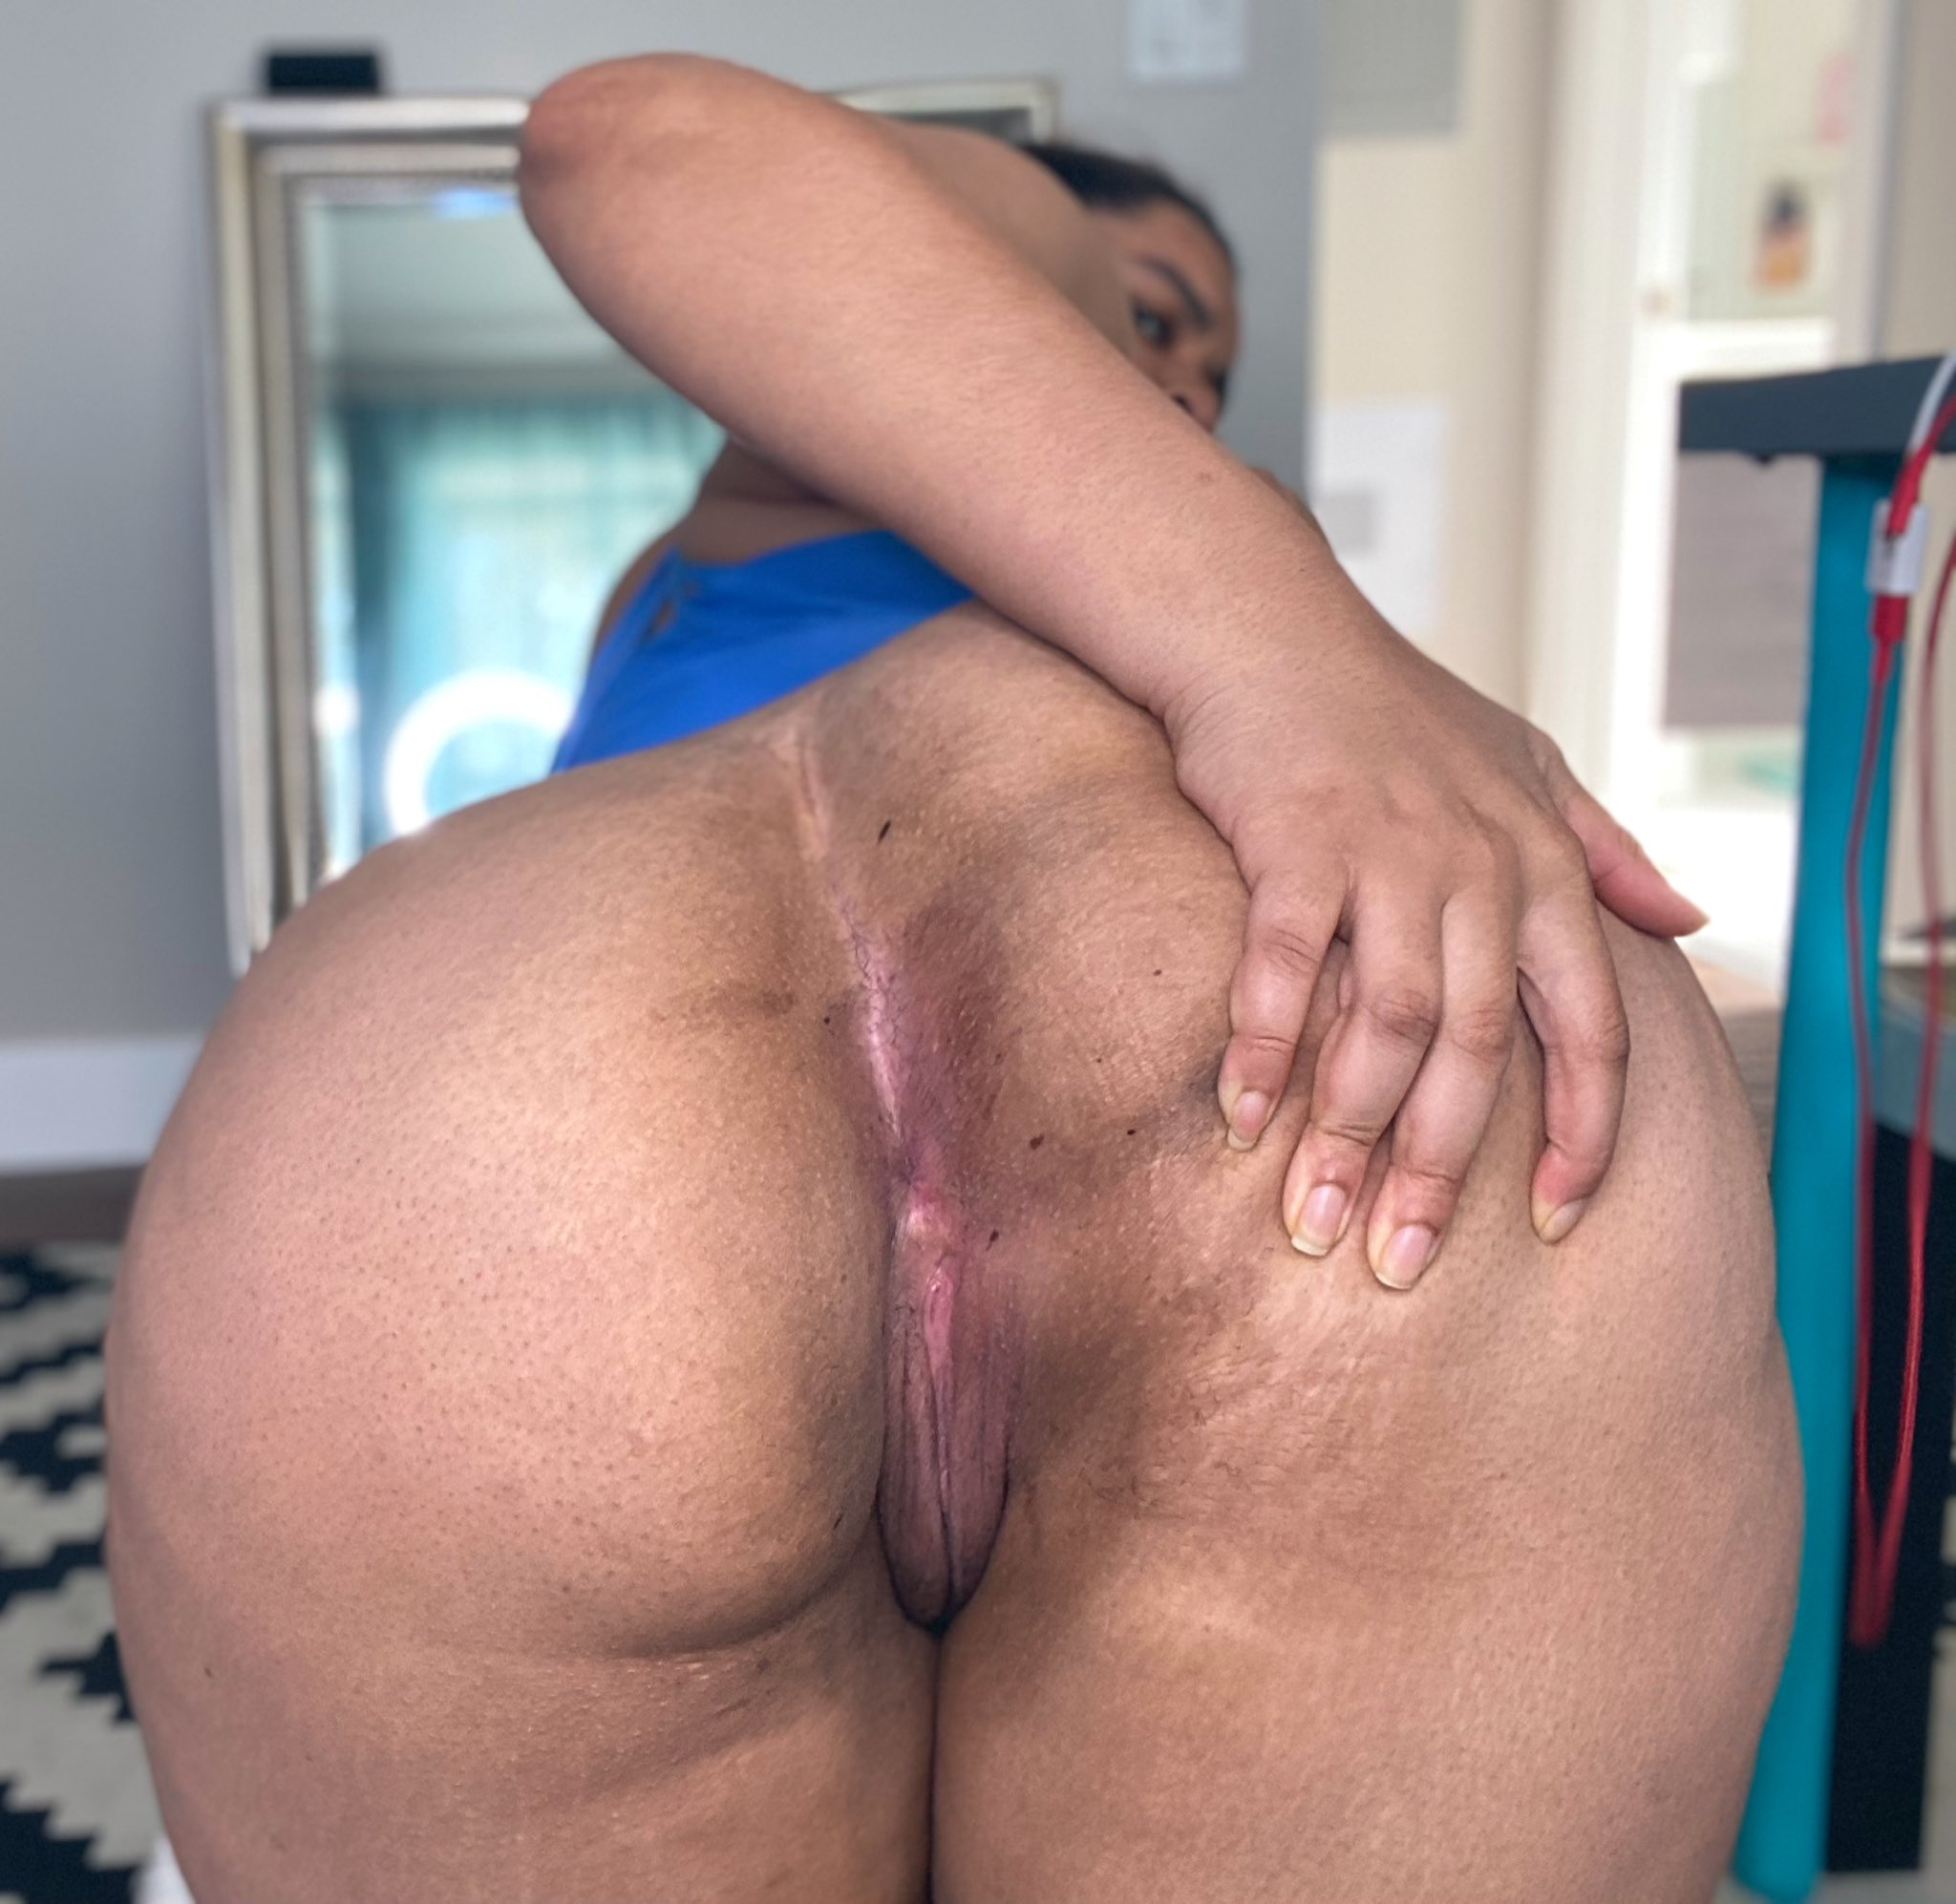 Best pussy pictures